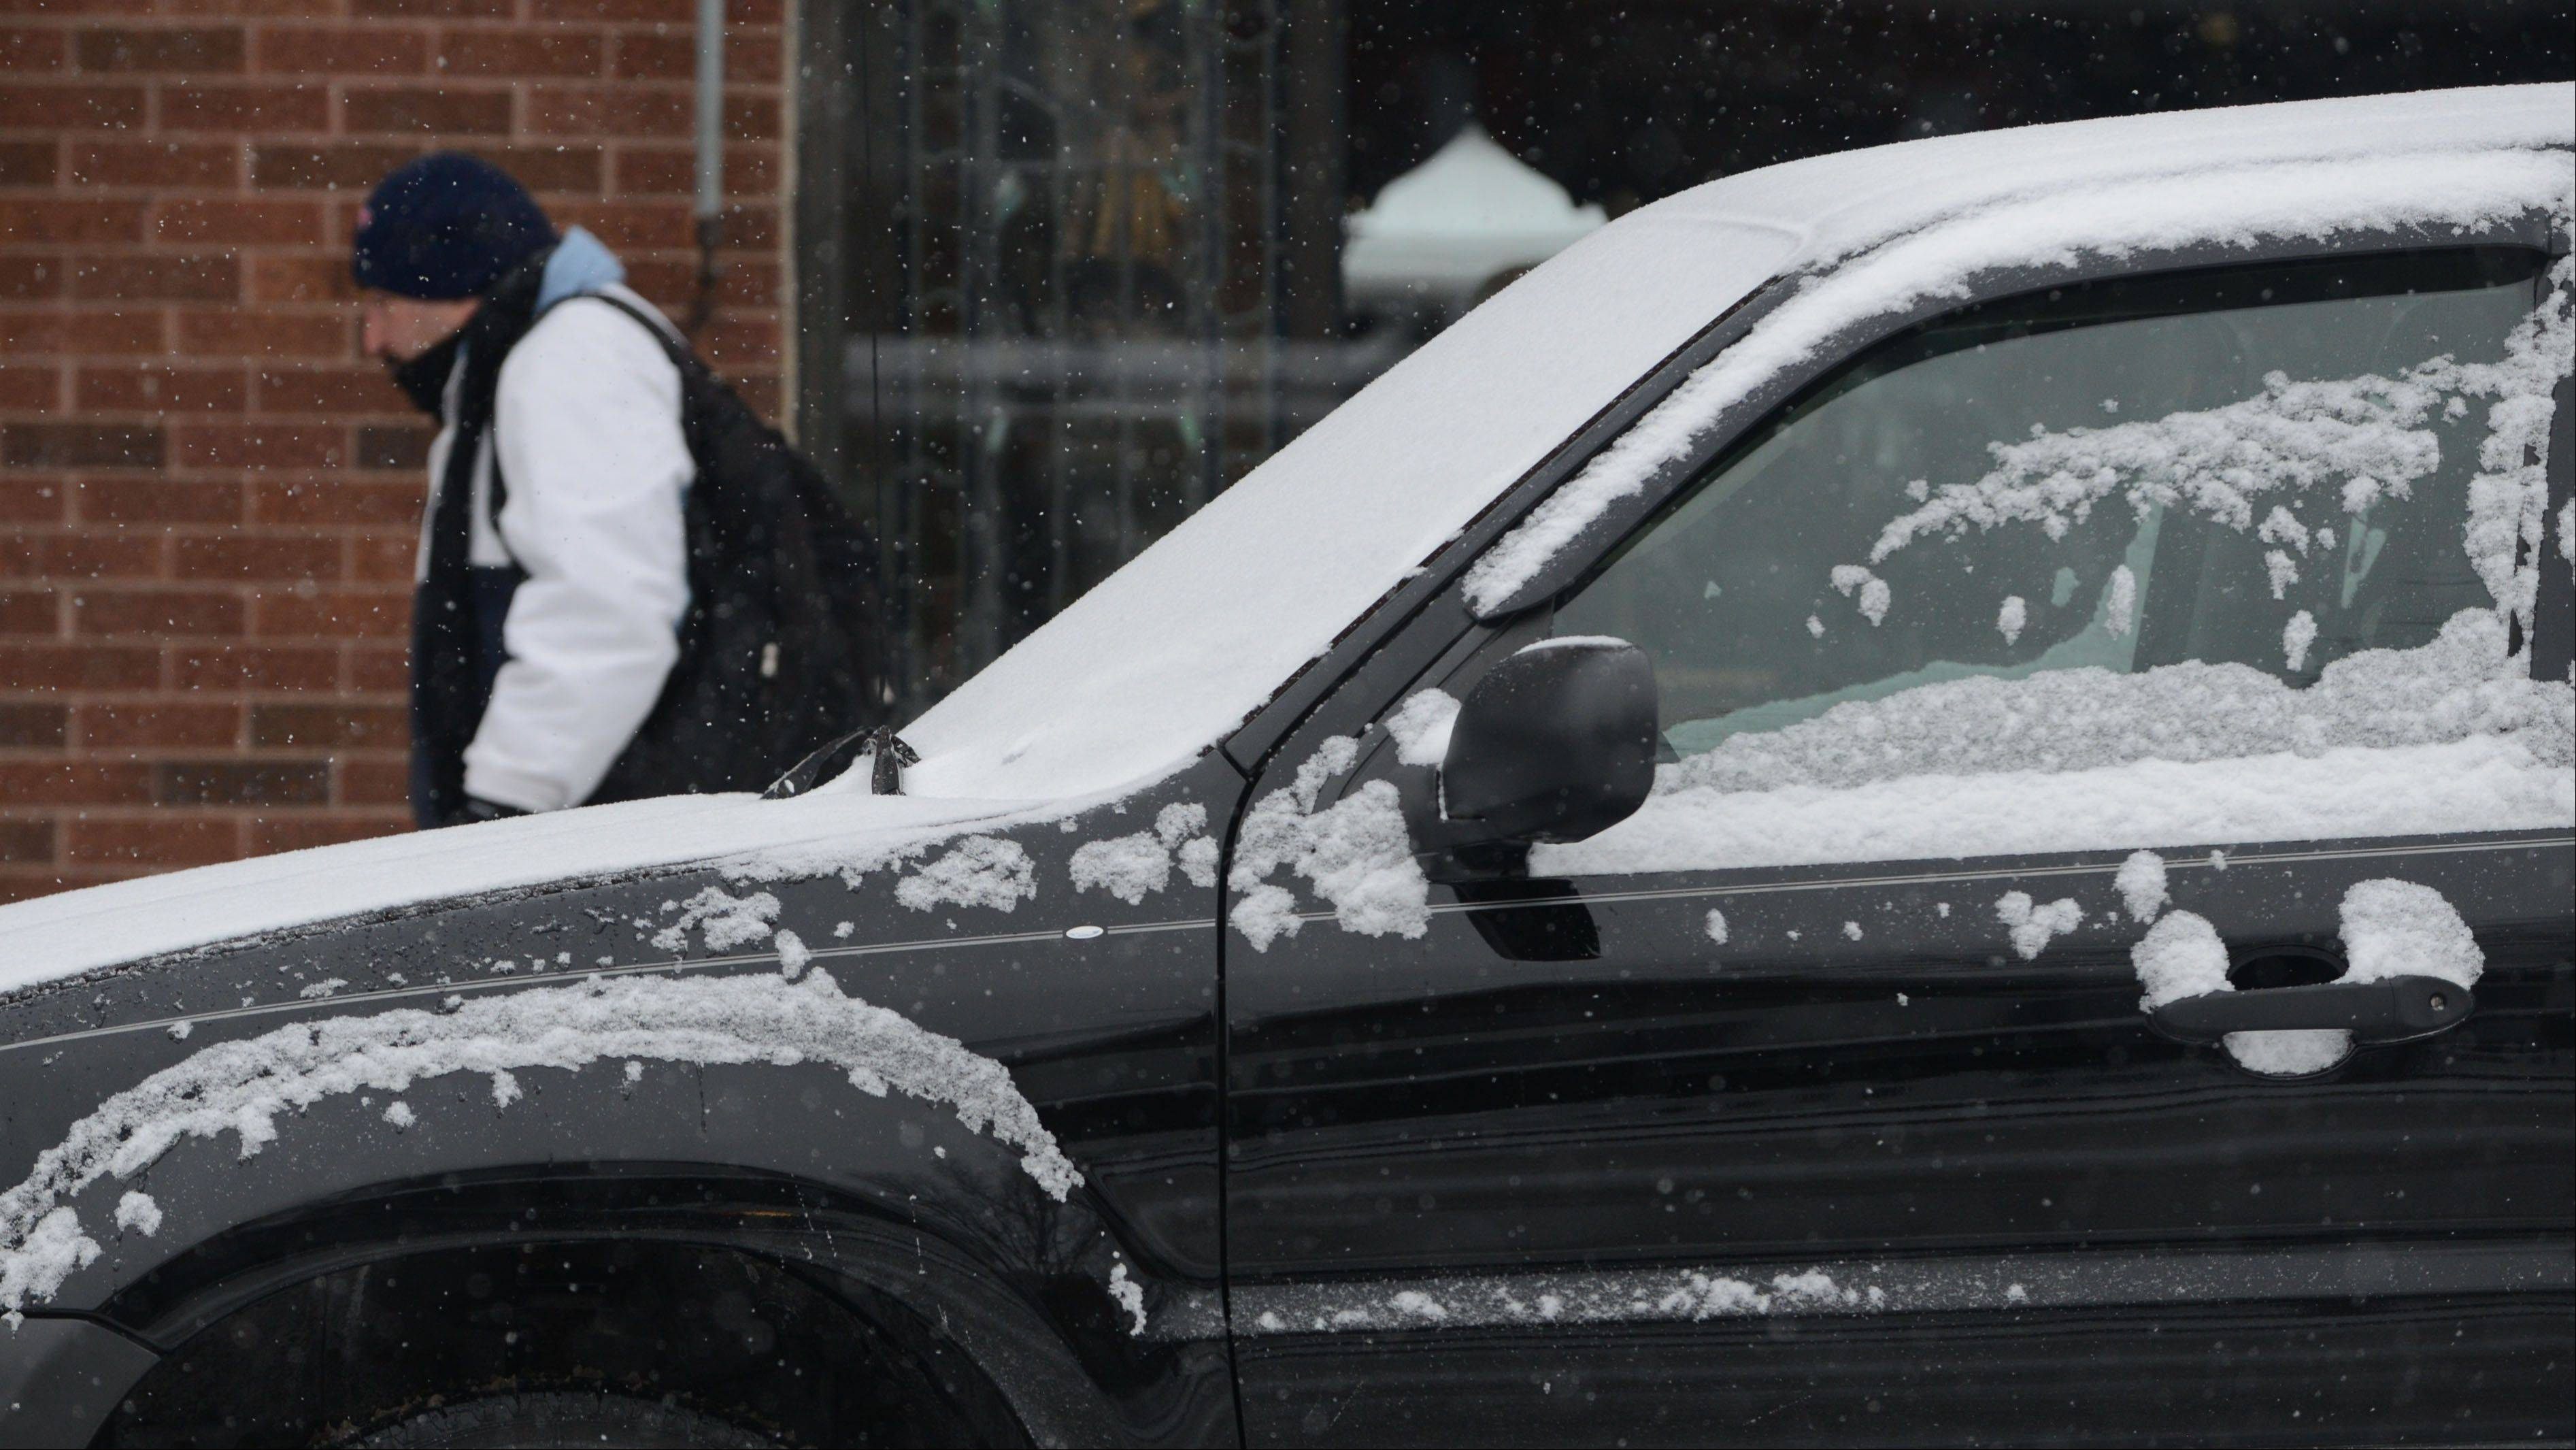 Snow begins to collect on cars parked along Main Street in downtown Wauconda New Year's Eve as a winter storm moves into the Chicago area.